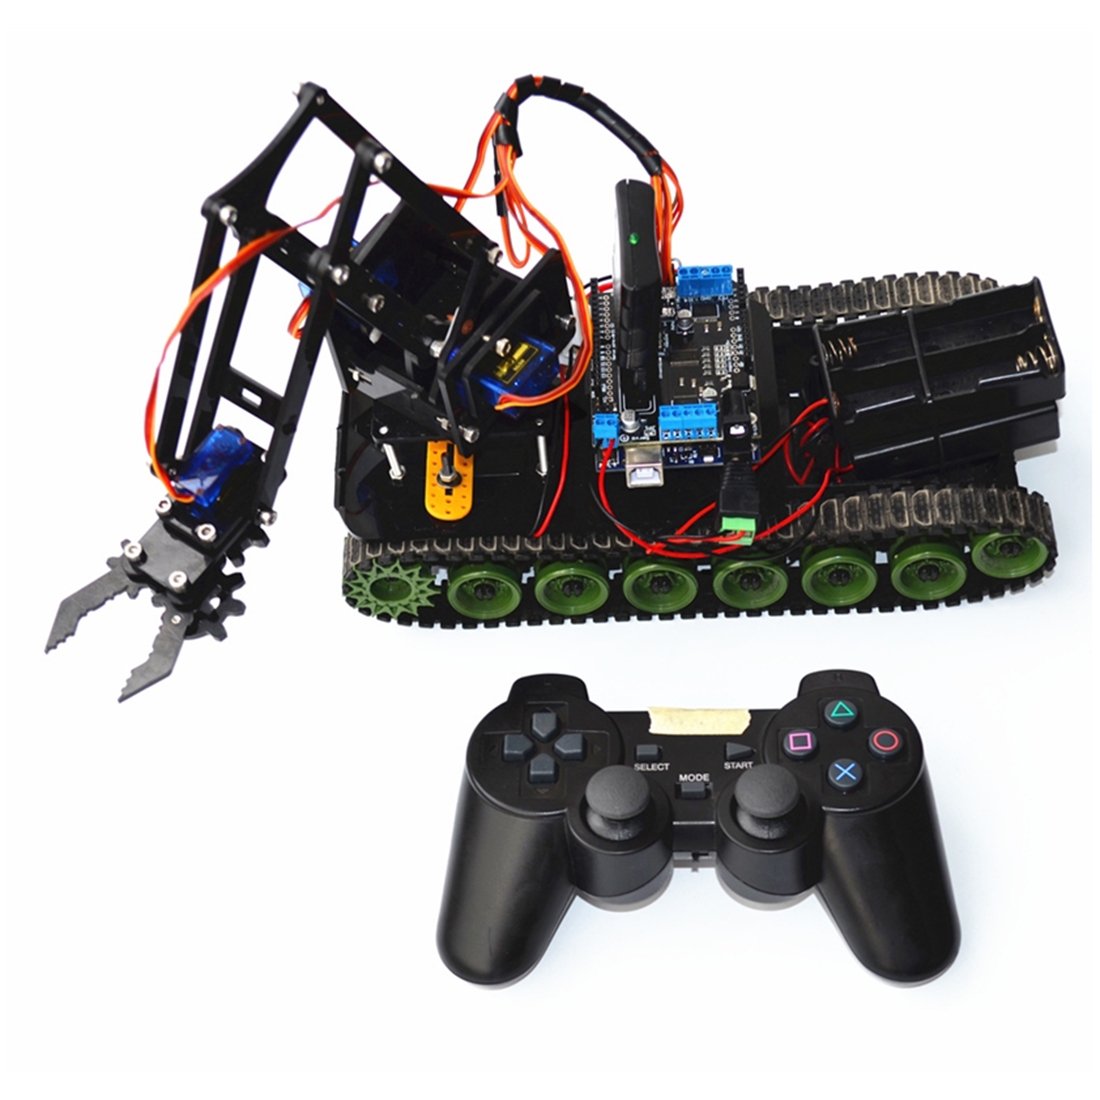 DIY Programmable Tank Mechanical Arm Robot Kit For Arduino Programmable Toys For Boys Kids Birthdaty Gifts 2020